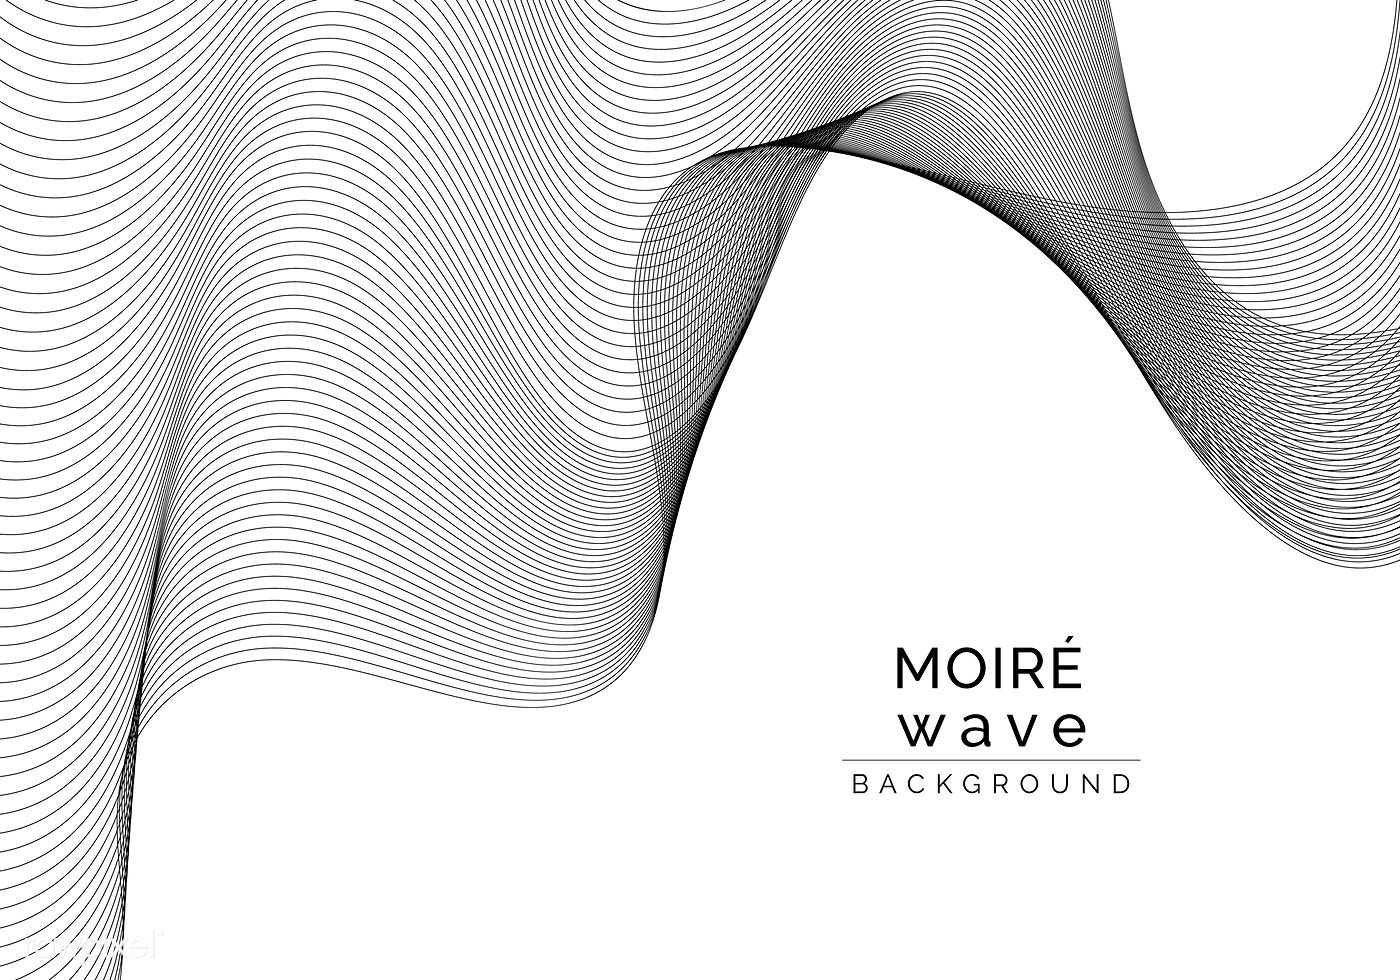 Black moiré wave on white background free image by